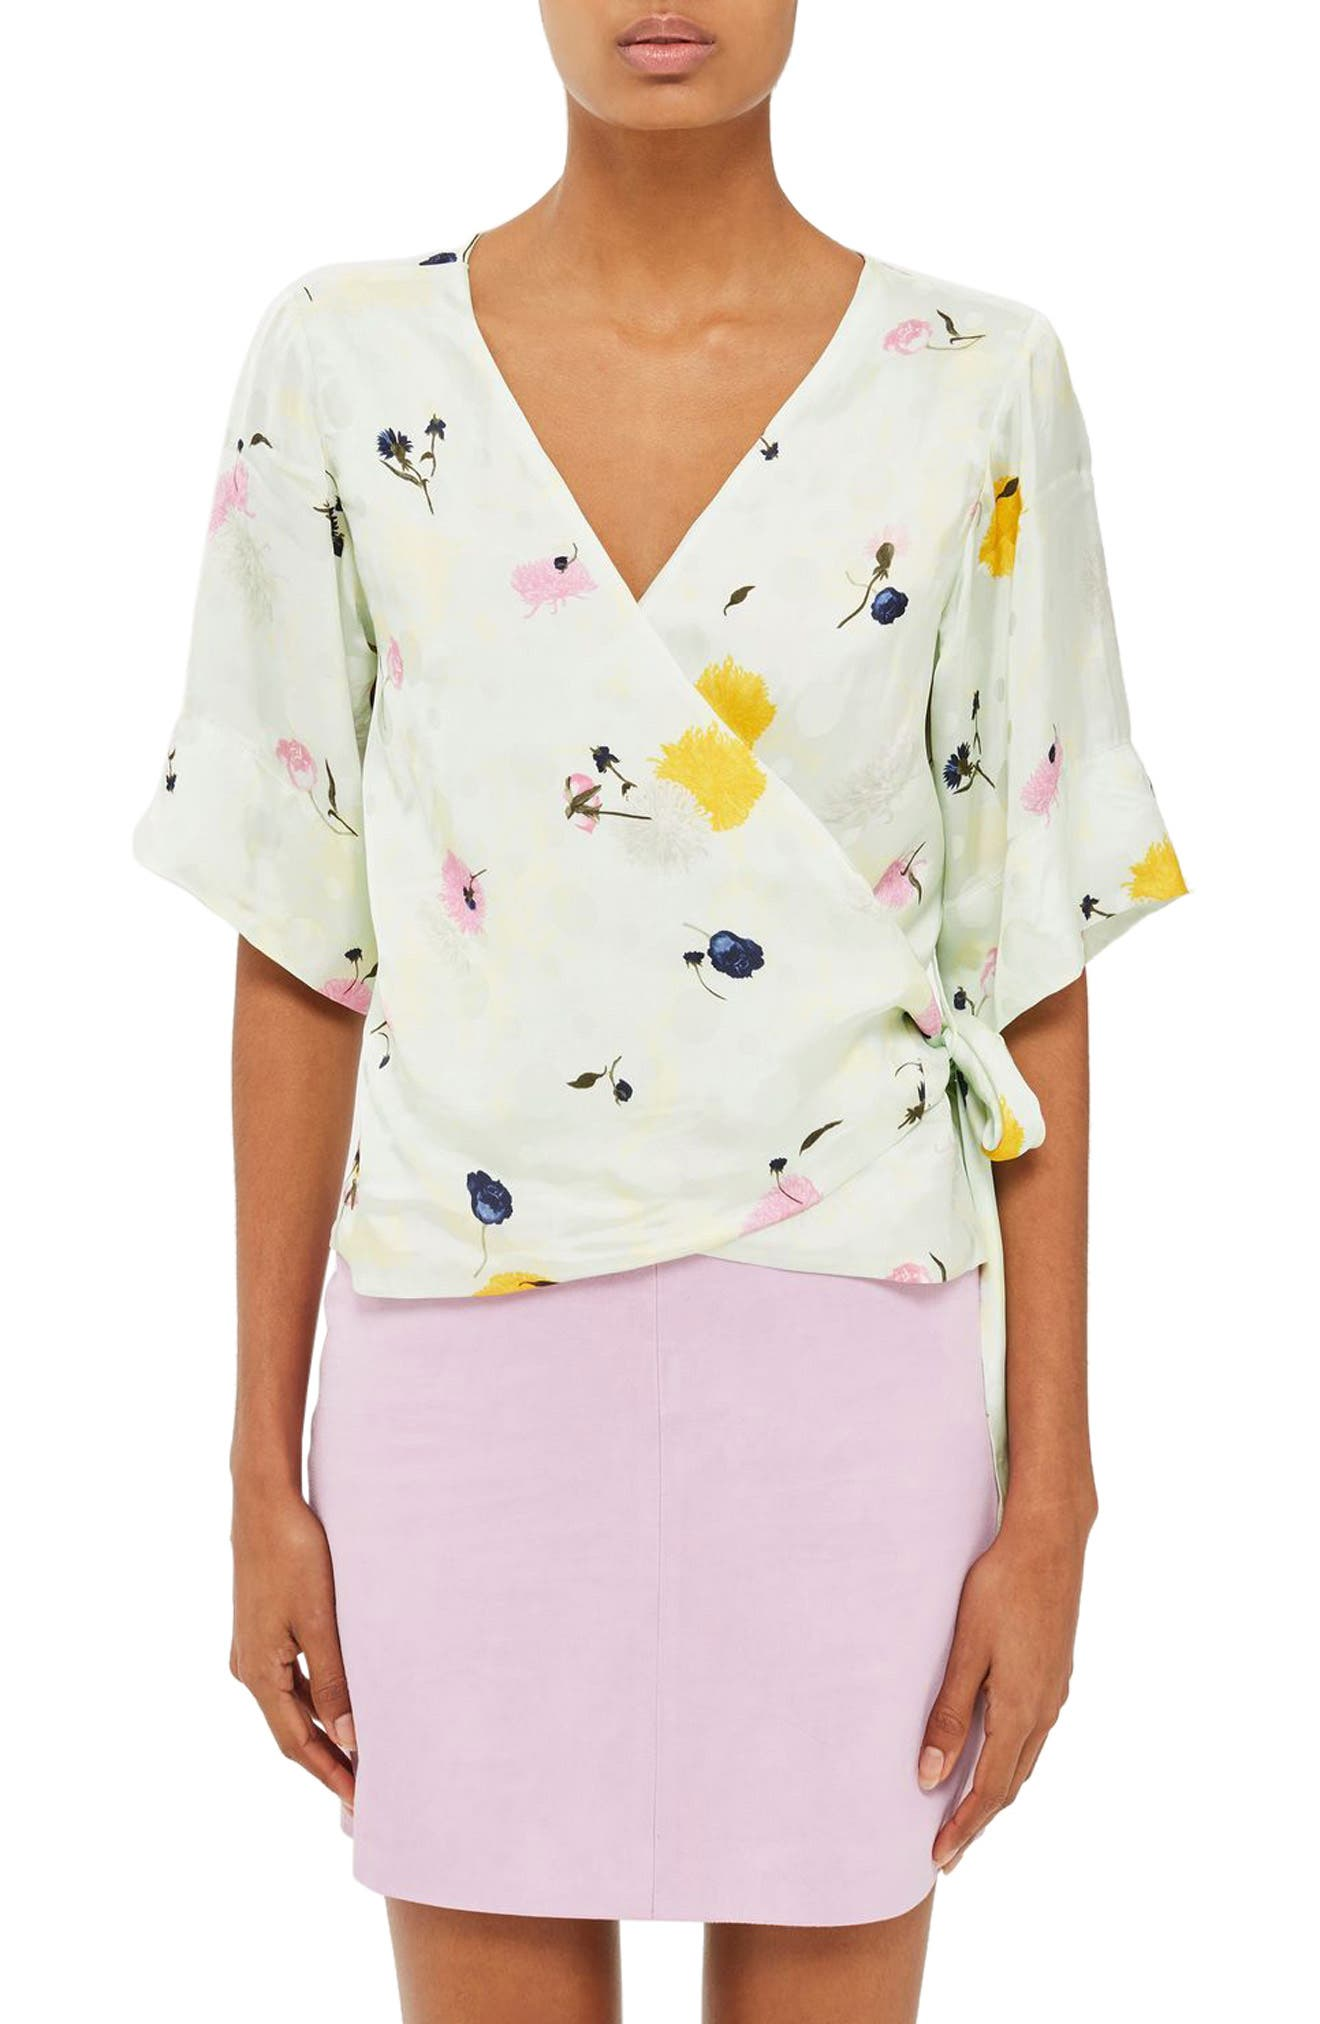 Topshop Boutique Marble Bloom Wrap Top